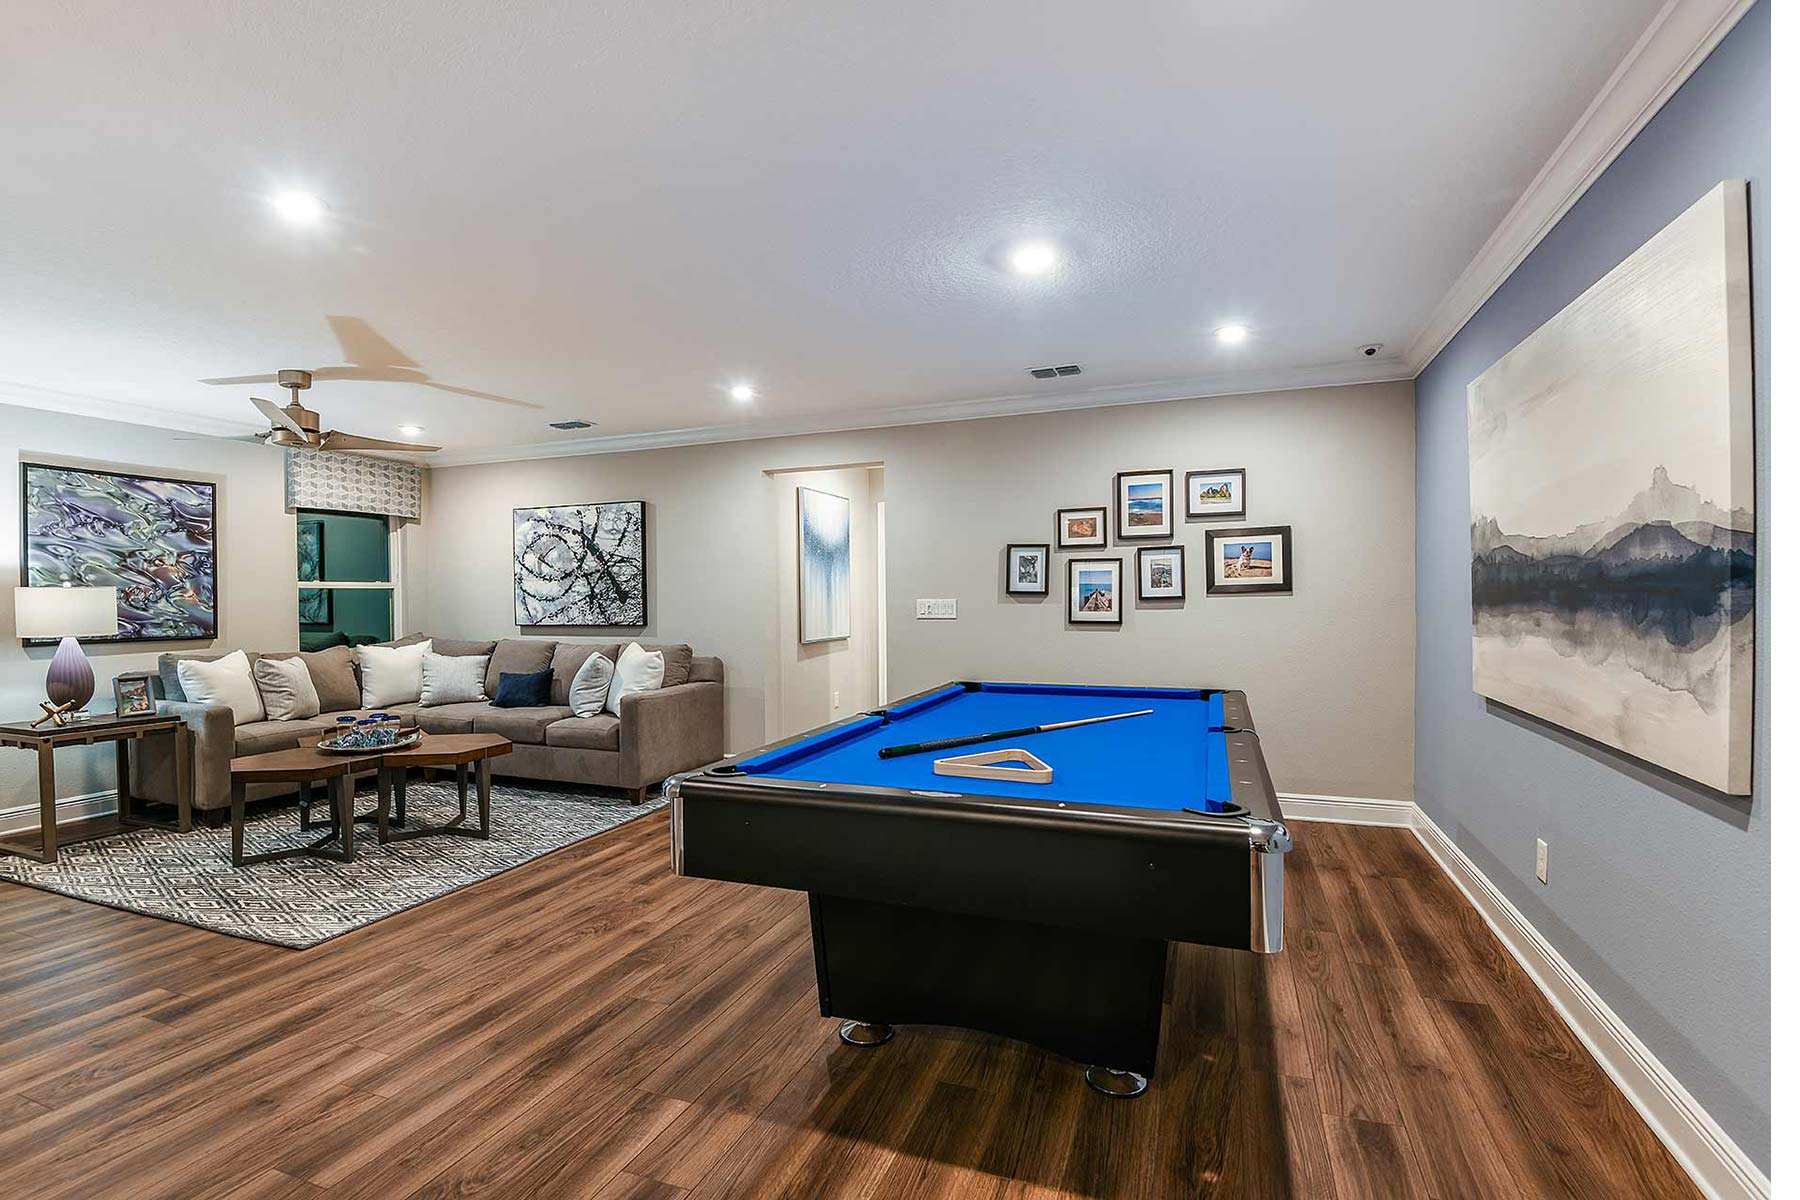 Venice Plan Recreation Room at Avea Pointe in Lutz Florida by Mattamy Homes